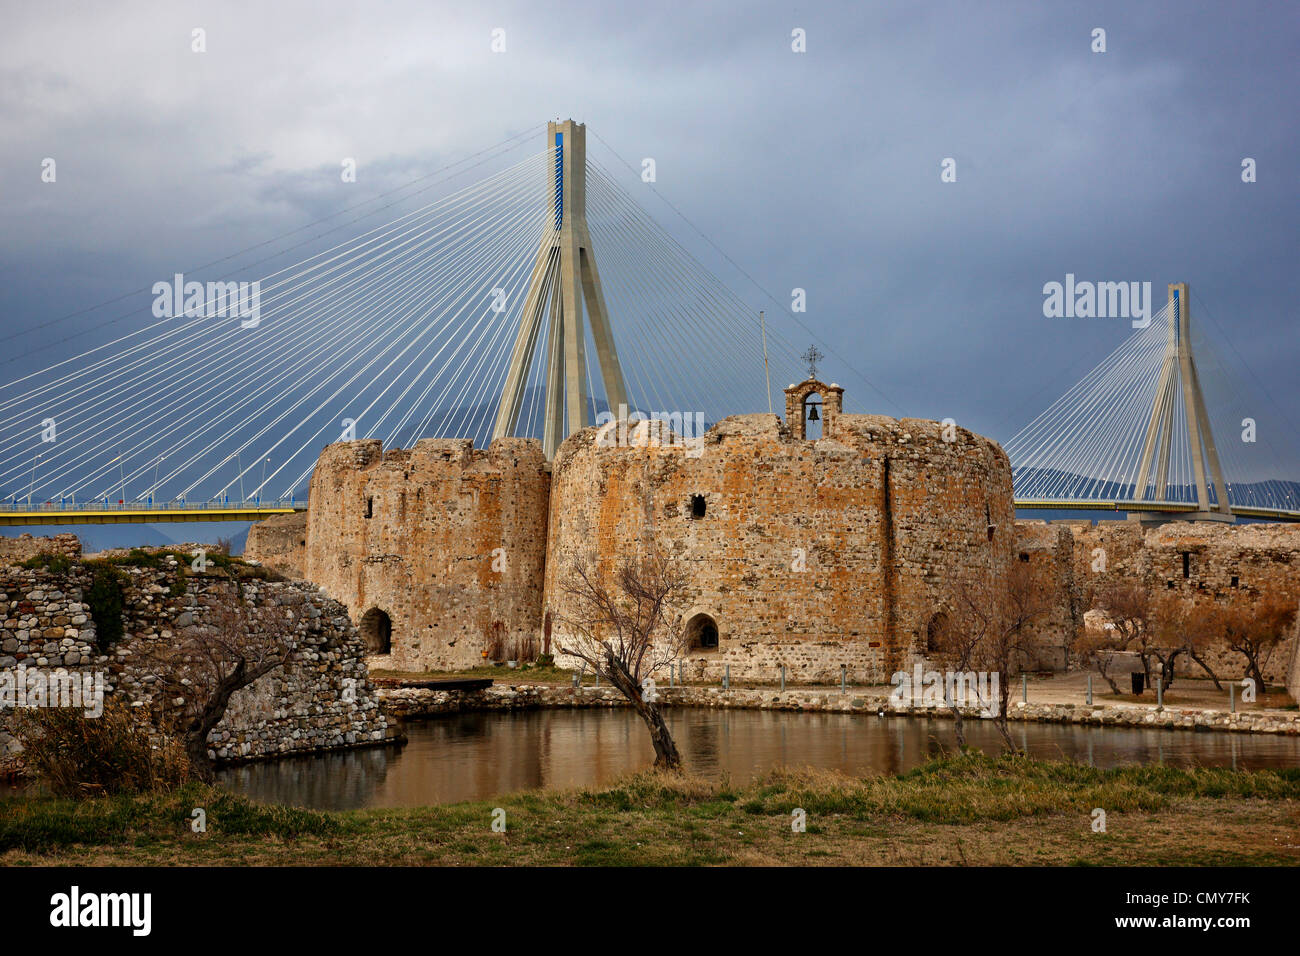 The Rion- Antirion cable bridge and the castle of Rio (also known as 'Castello di Moreas'), Achaia, Peloponnese,Greece. - Stock Image